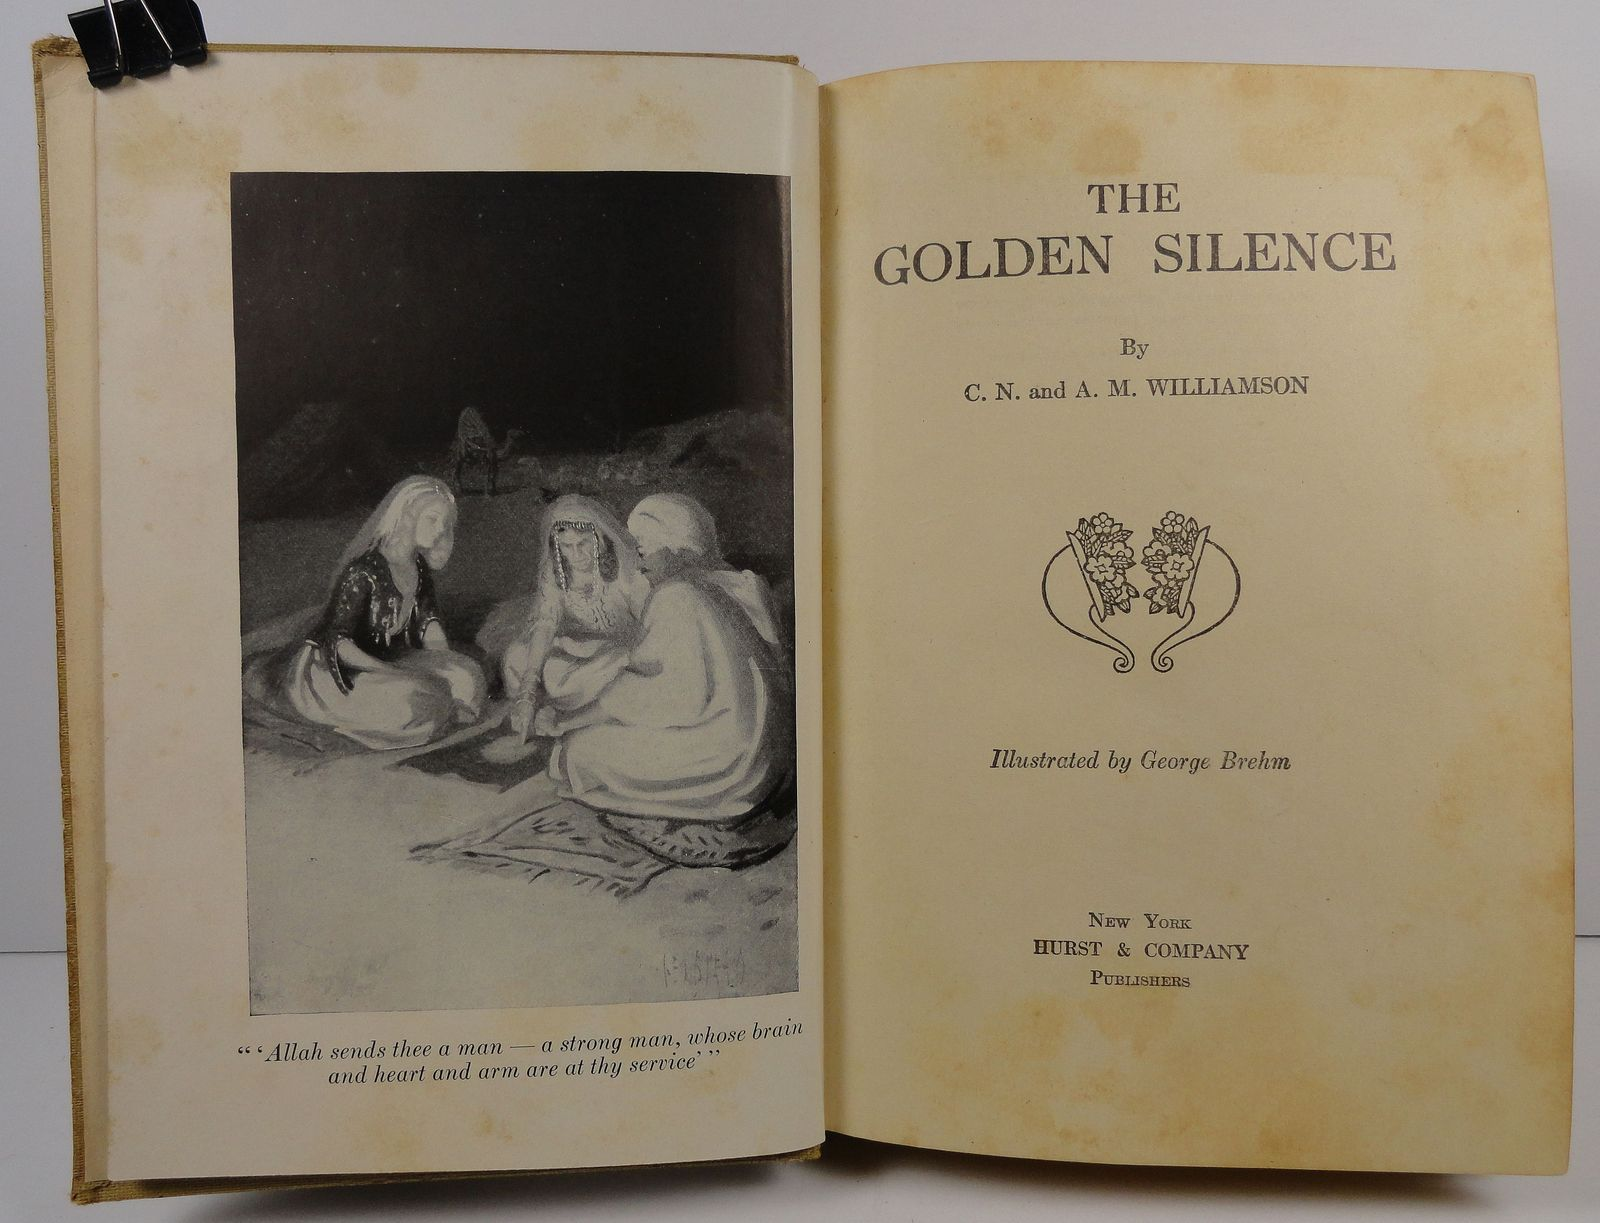 The Golden Silence by C. N. and A. M. Williamson 1910